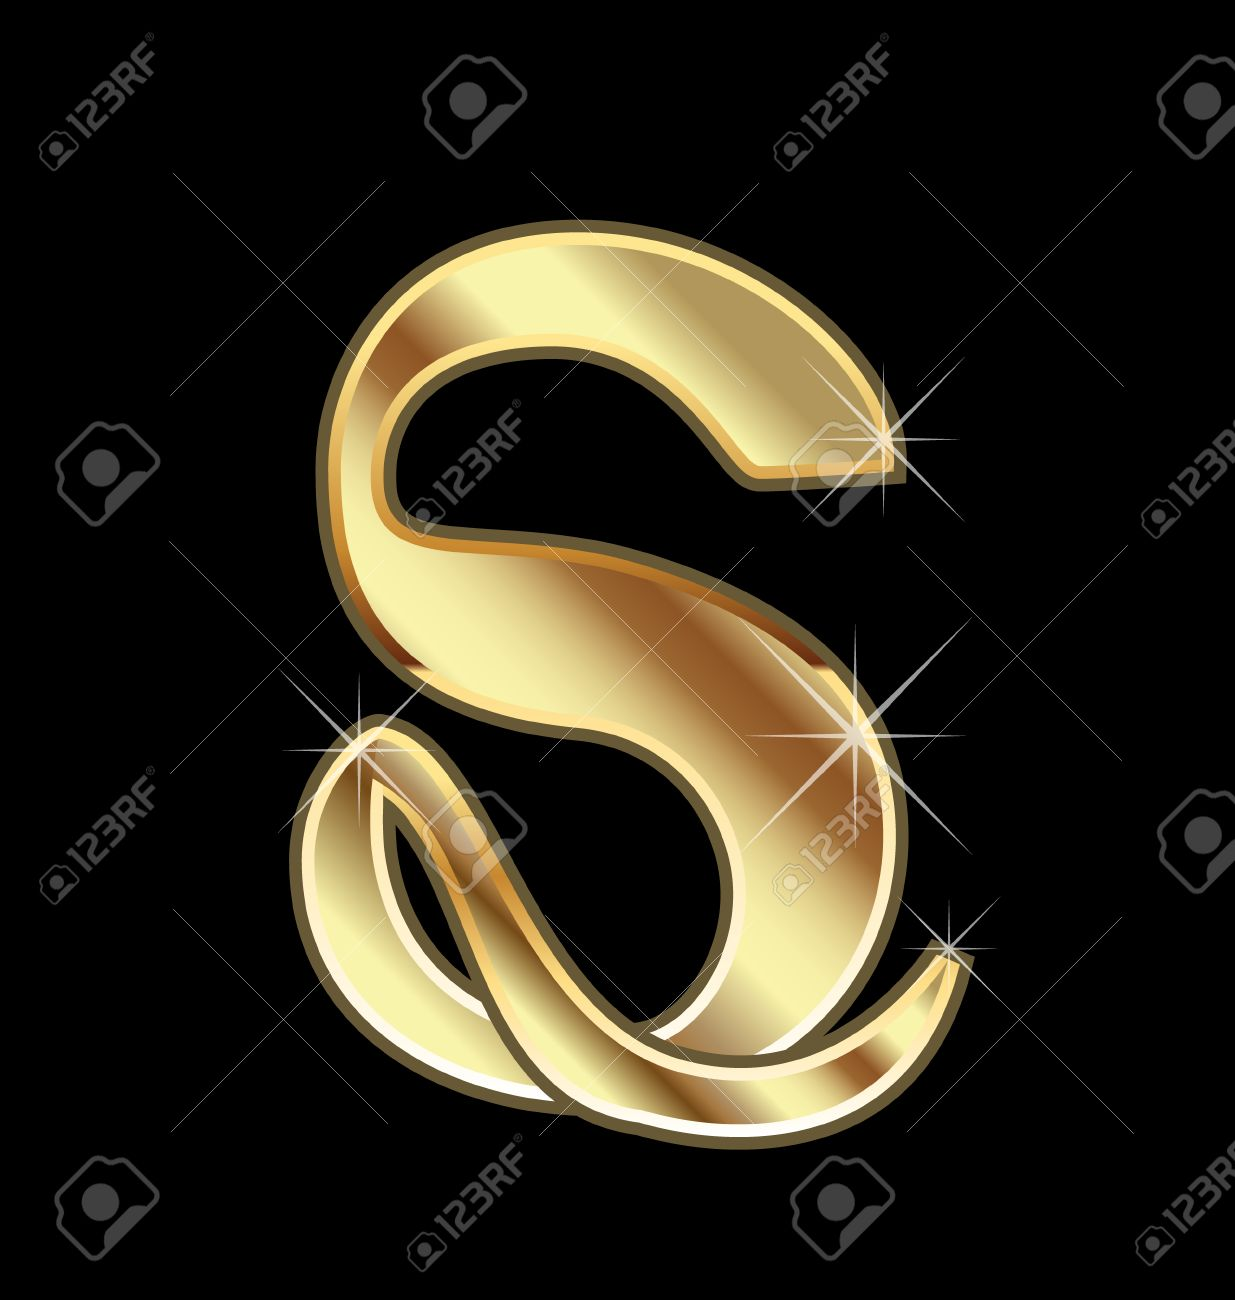 Gold Fancy Letter S Icon Vector Royalty Free Cliparts Vectors And